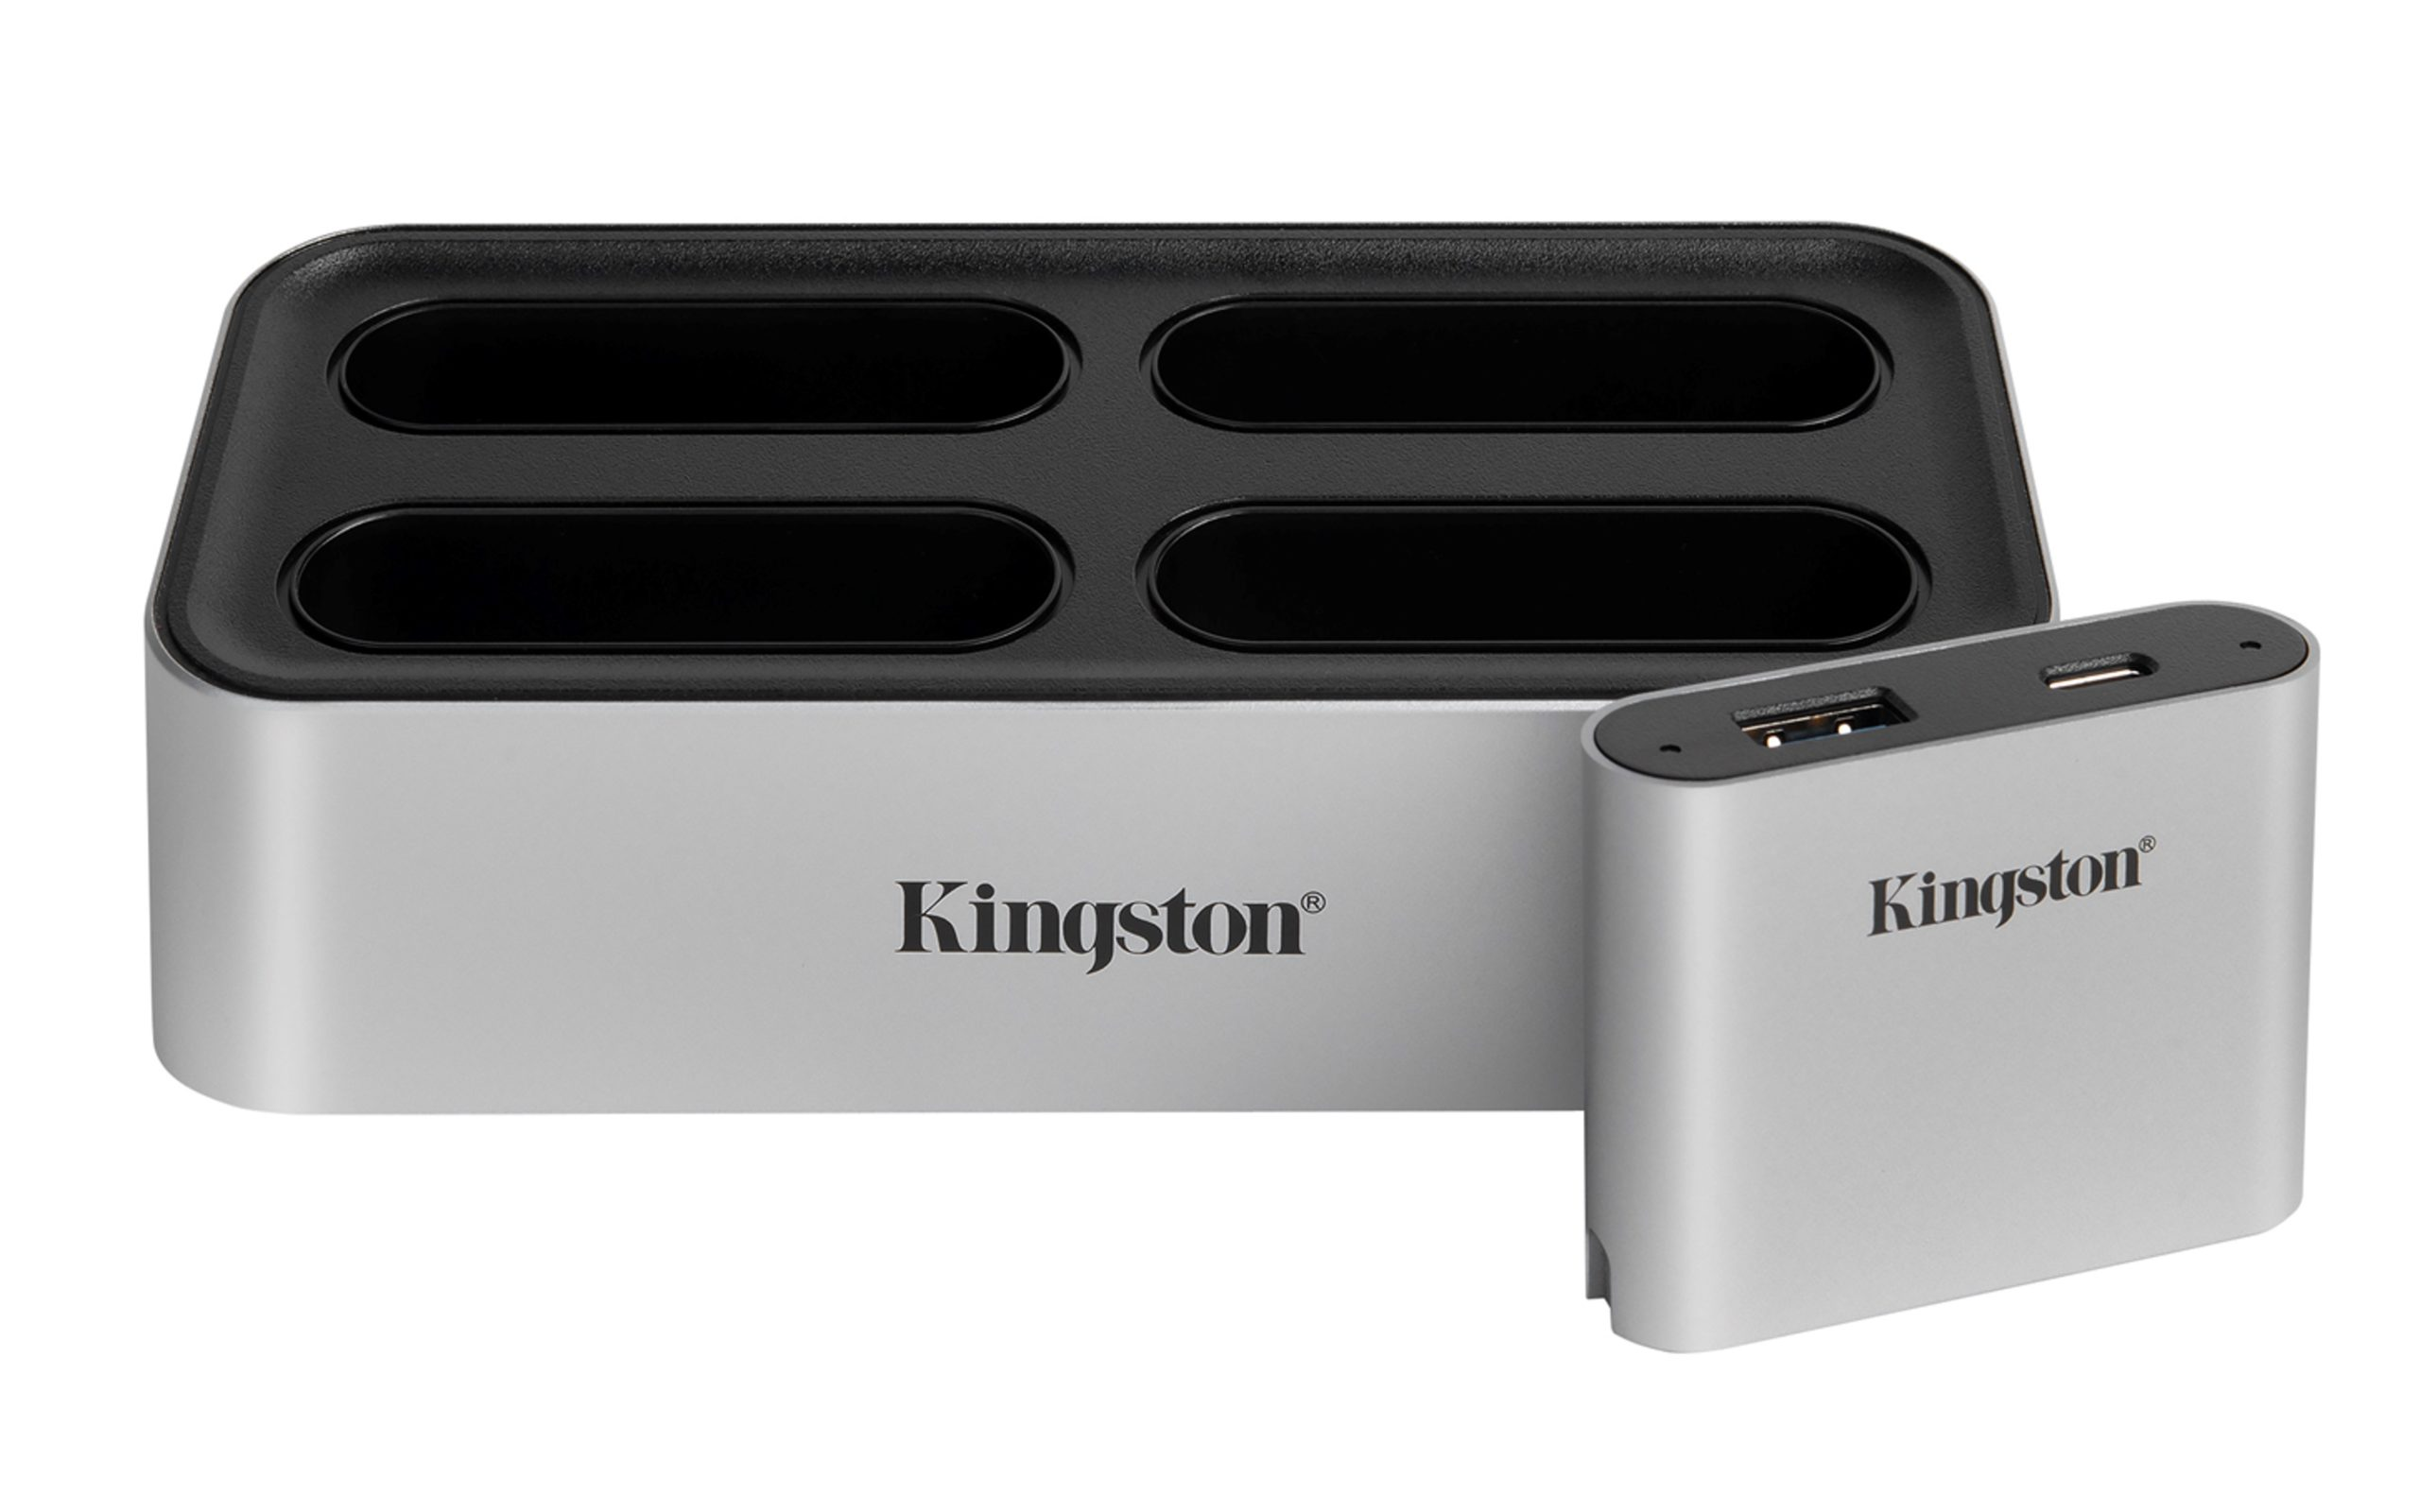 CES 2021 : Kingston Previews New NVMeSSD Lineup and Launches Kingston Workflow Station along with Readers